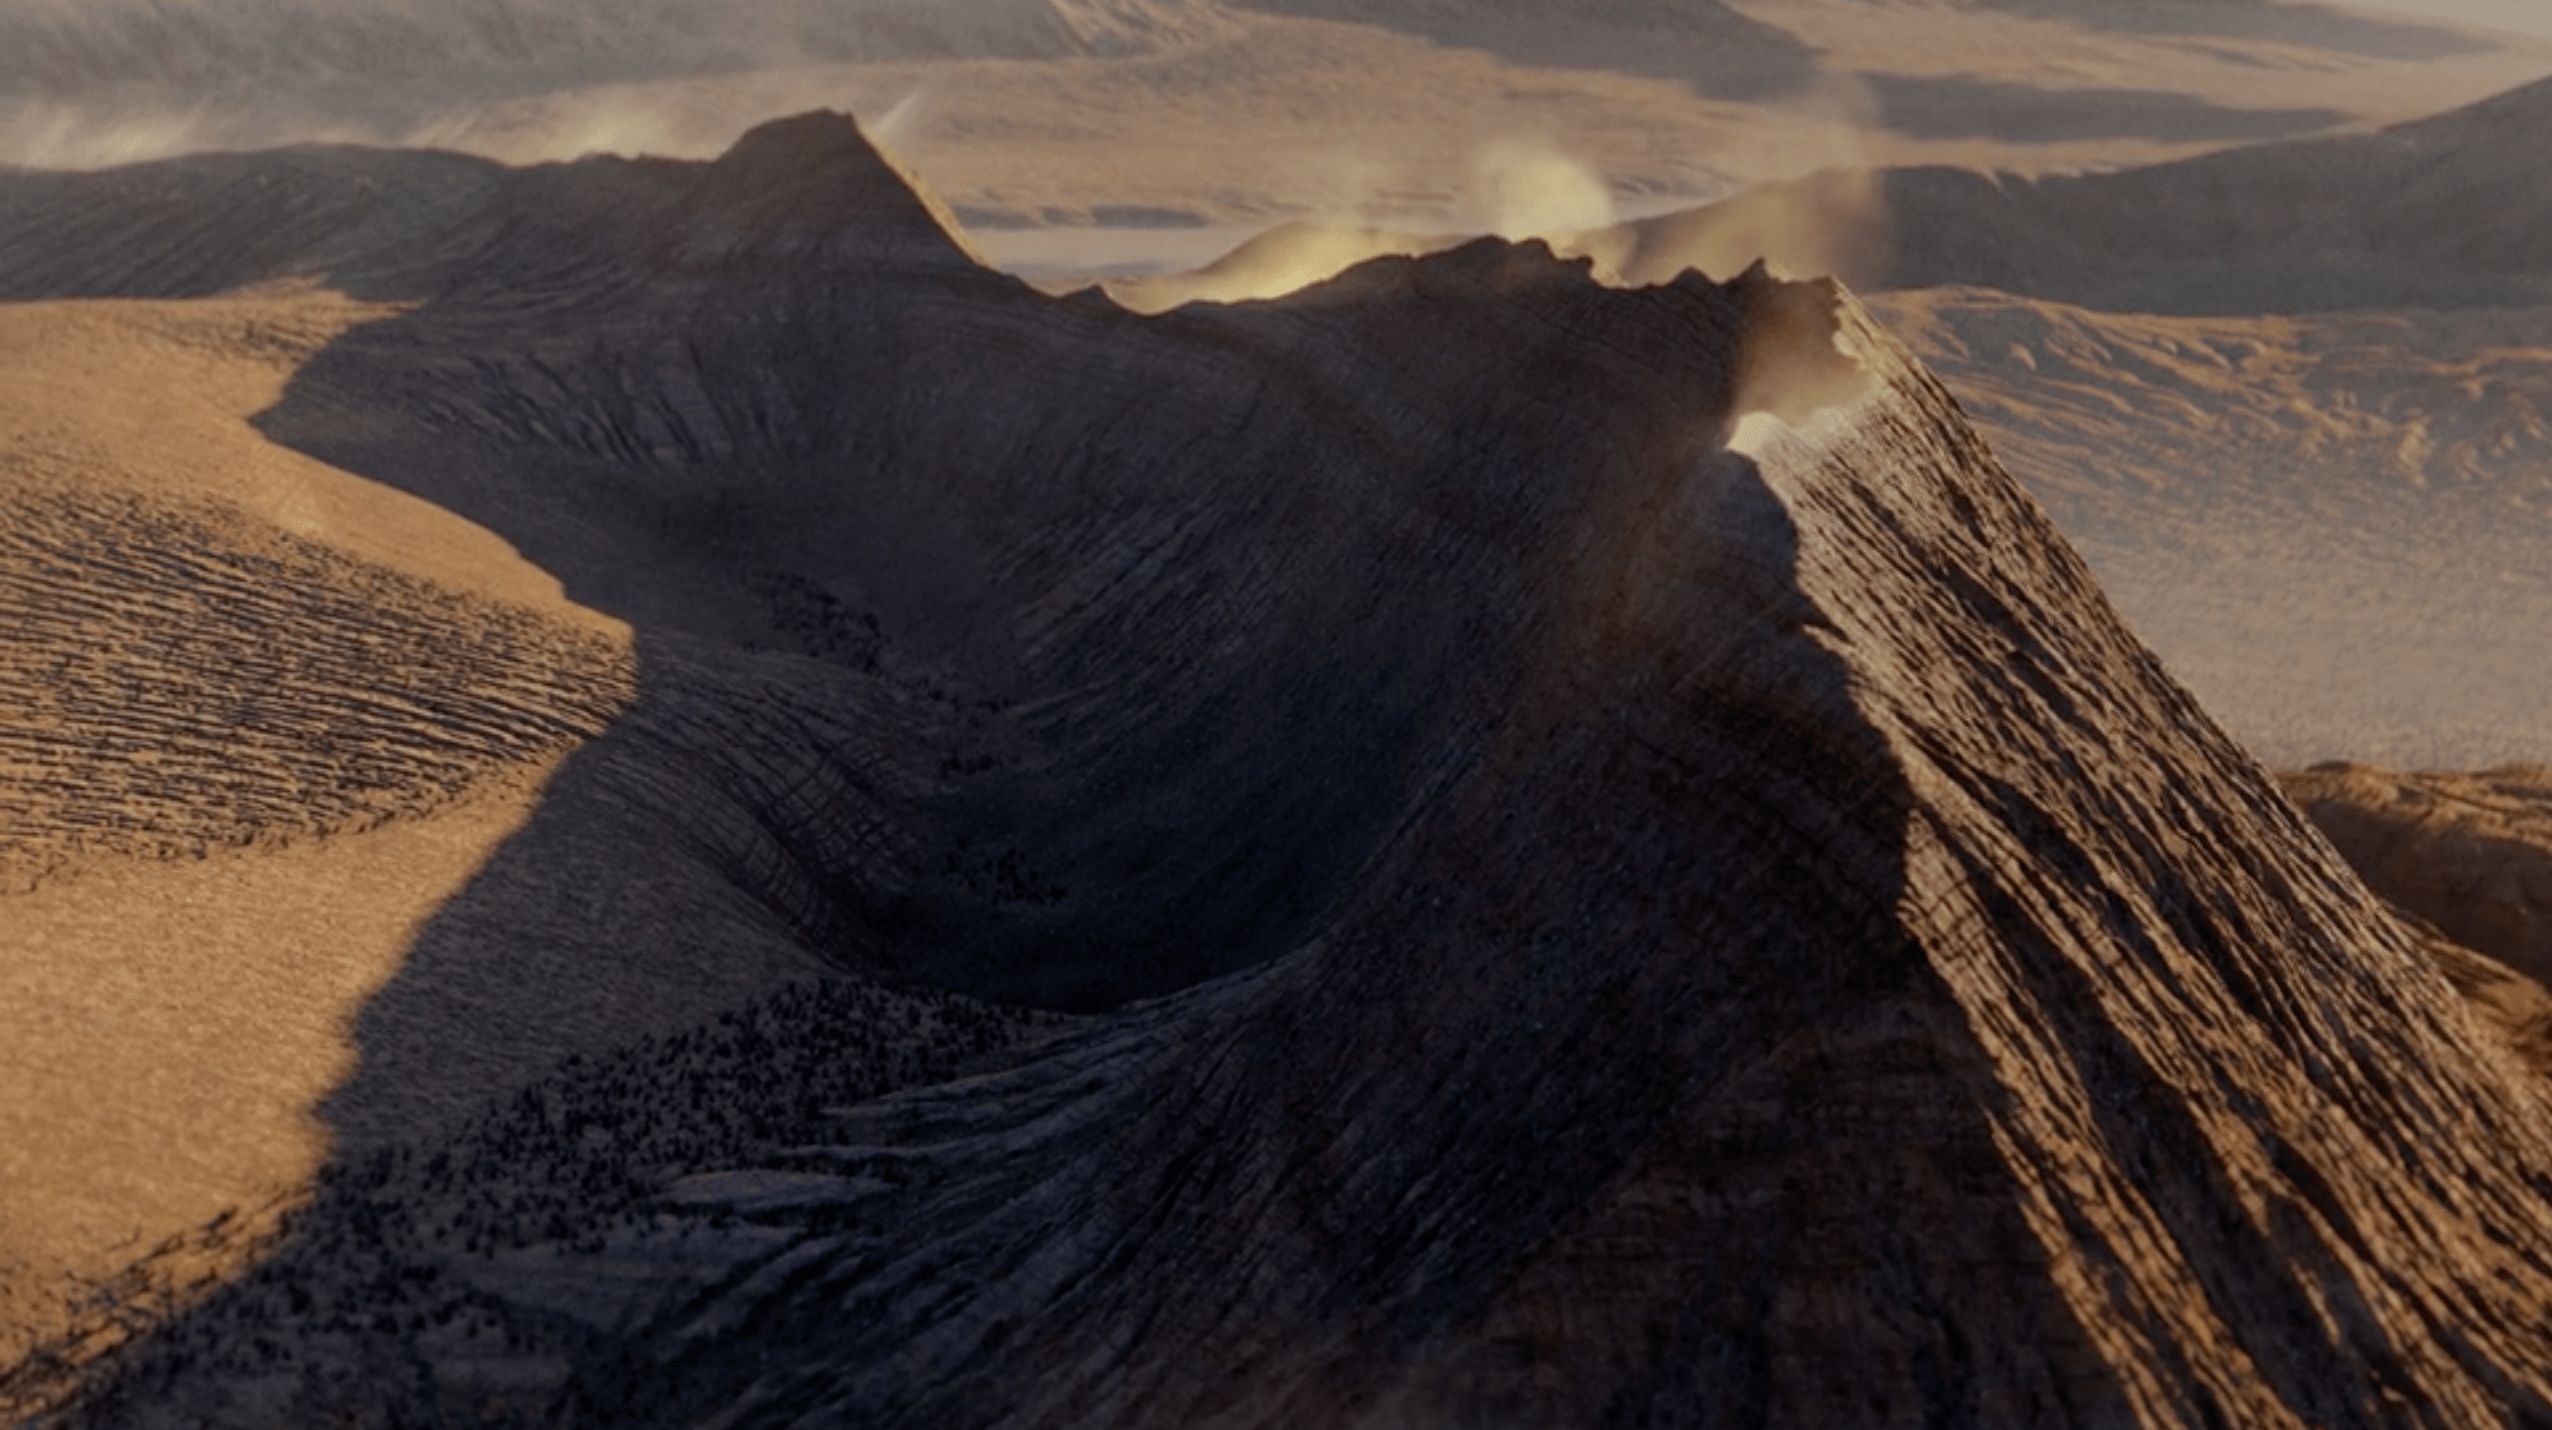 Mountain tops and sand VFX